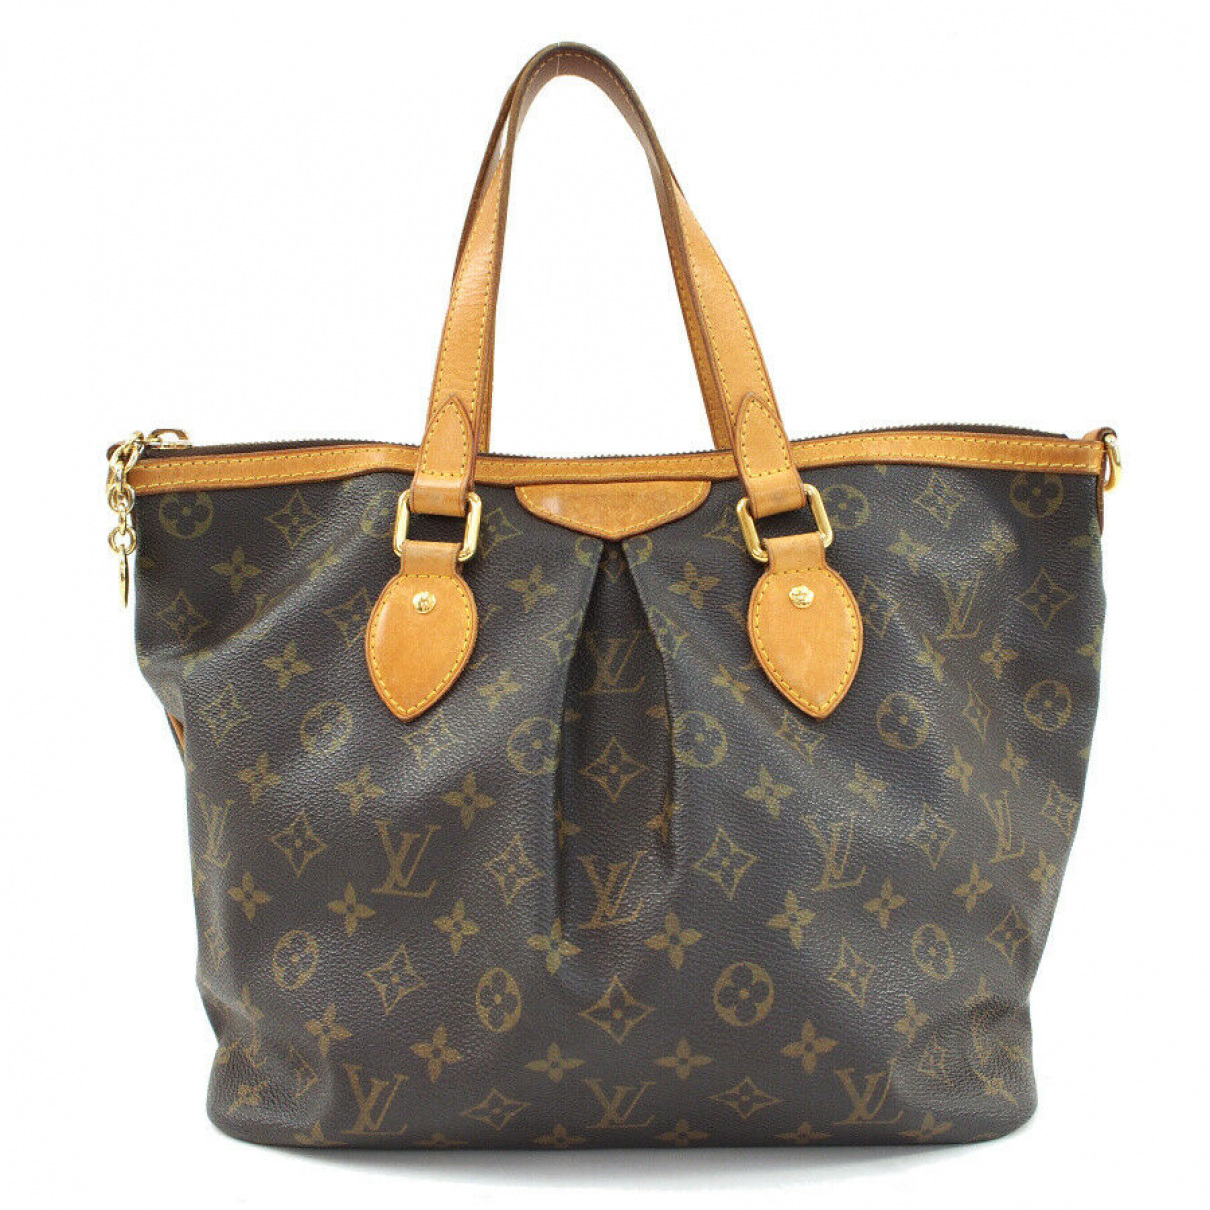 Louis Vuitton N Leather handbag for Women N